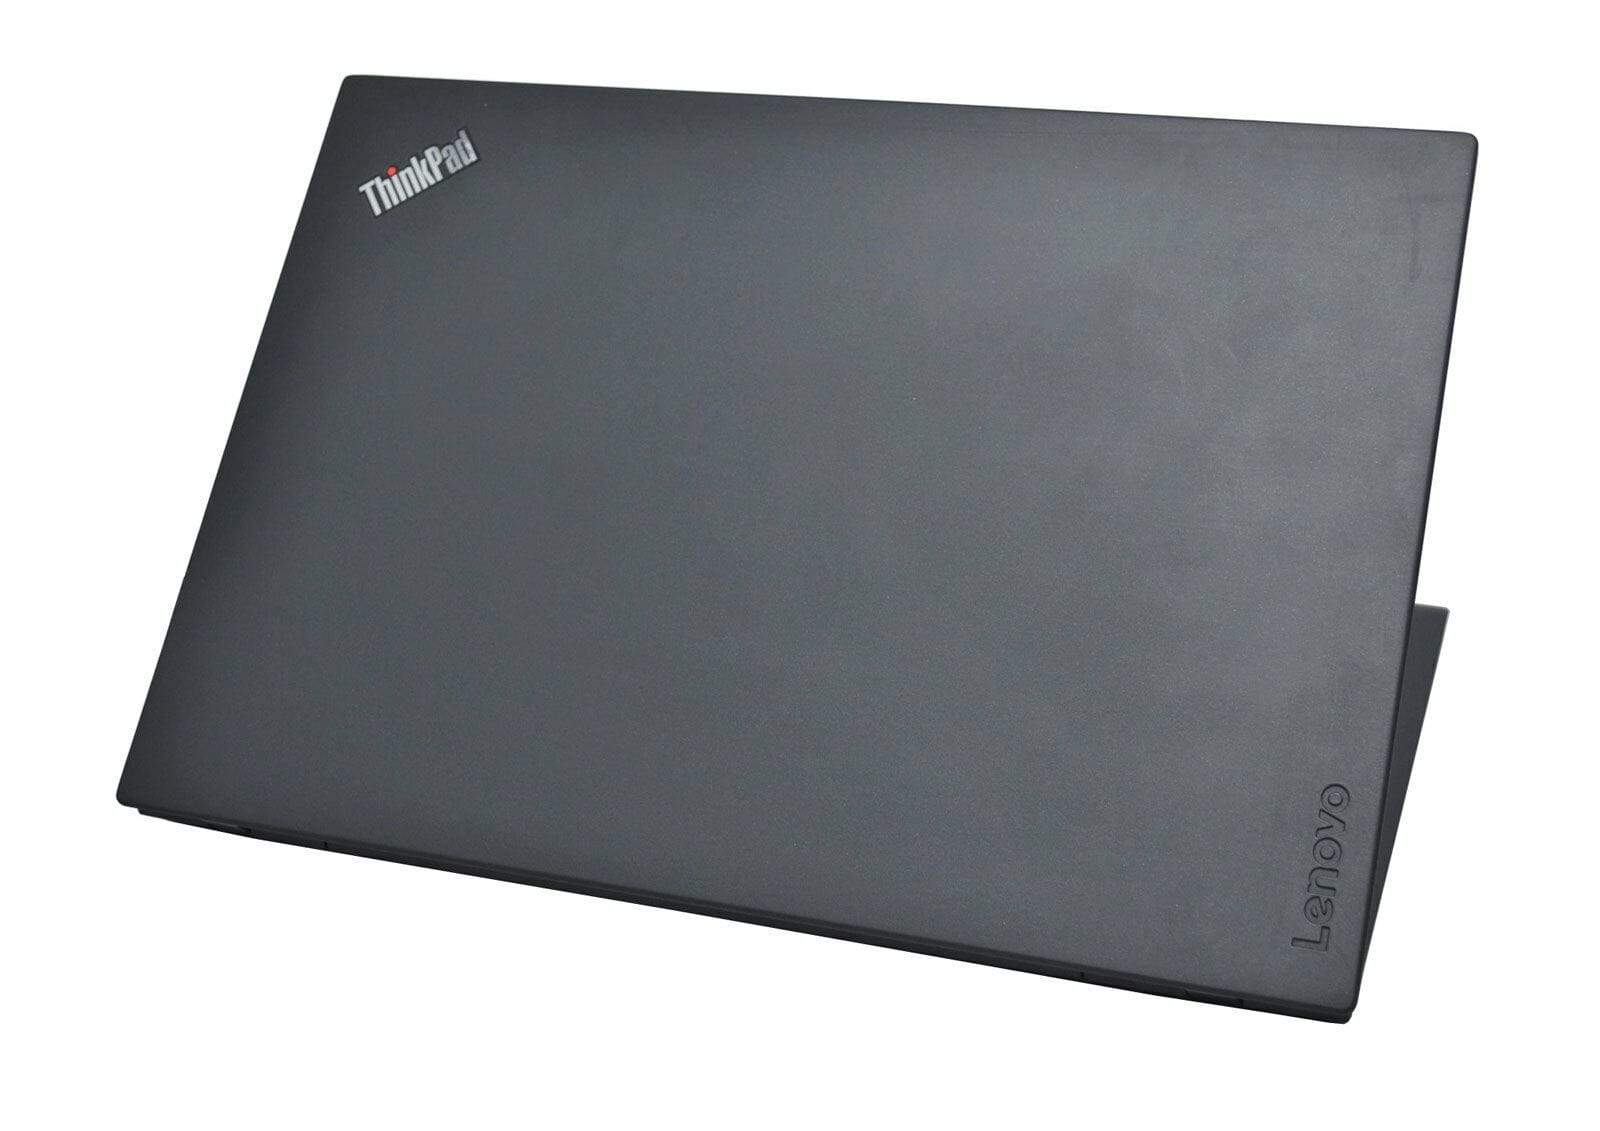 Lenovo Thinkpad T470 IPS Premium Laptop: 256GB SSD, Core i5-7300U, 8GB, Warranty - CruiseTech